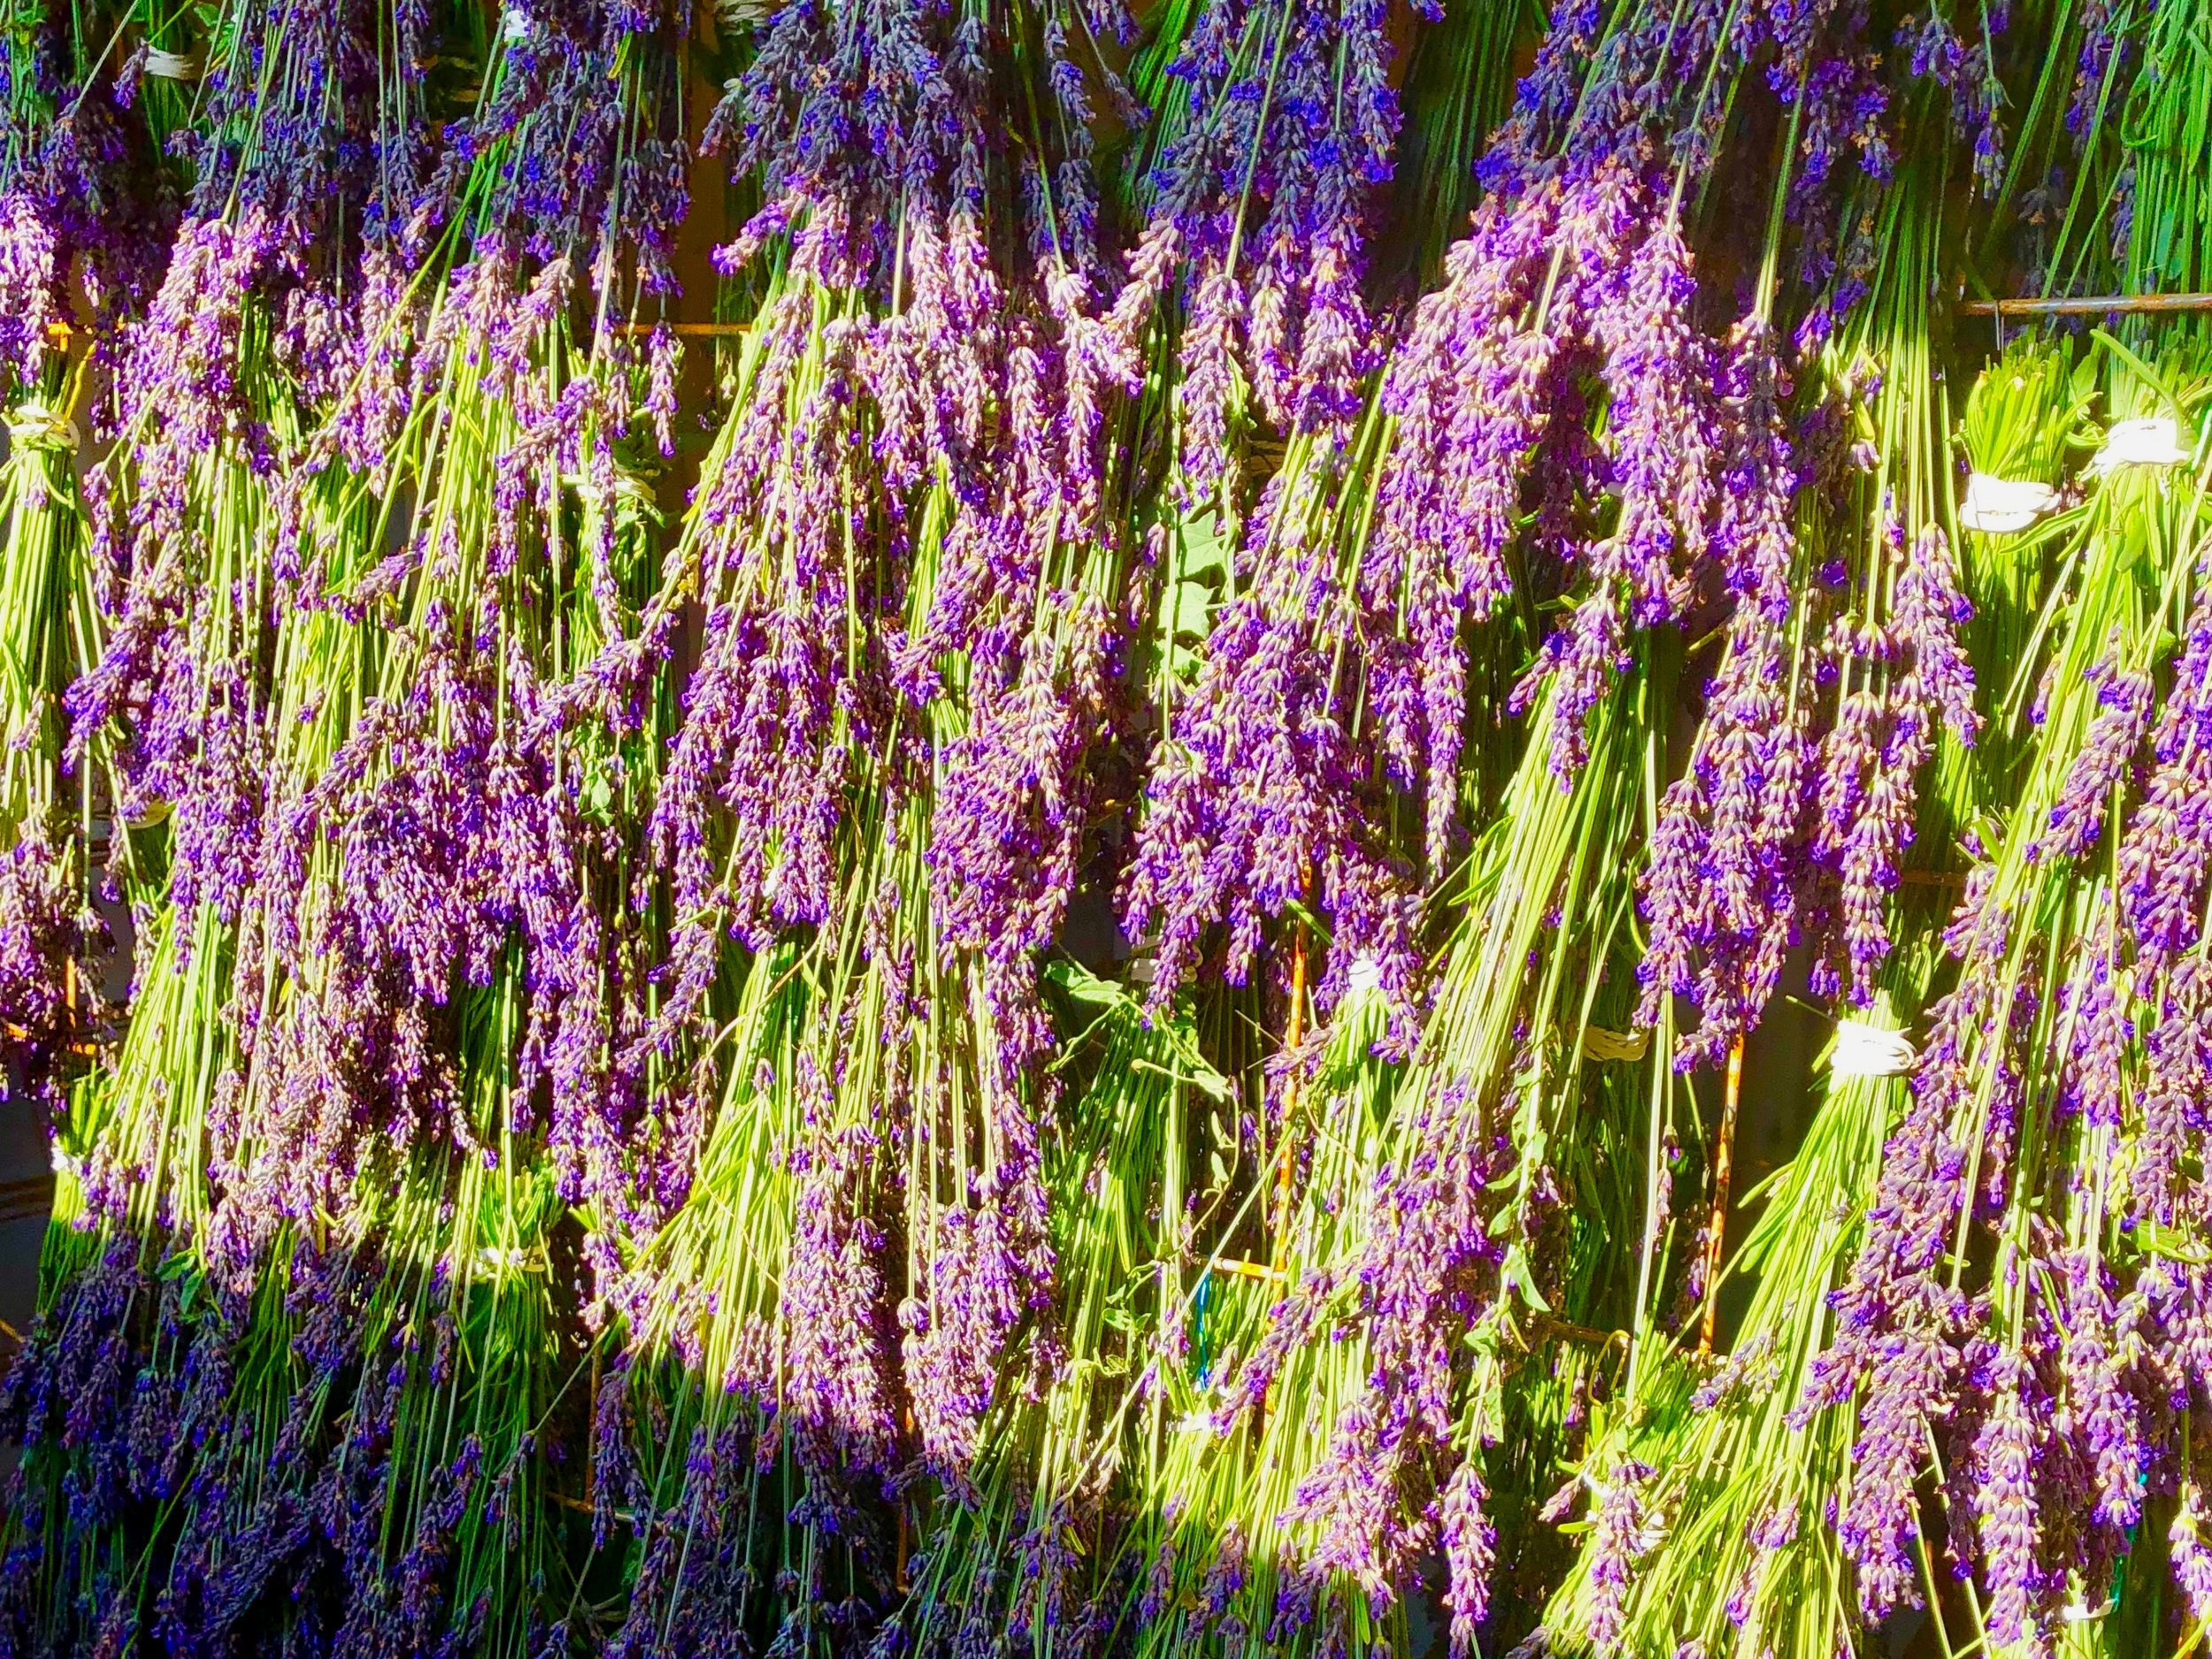 Dried Bunches - Keep Lavender around the house year-round. Use it in dried flower arrangements, to make a craft project, or to ward off insects. There is always room for more lavender.